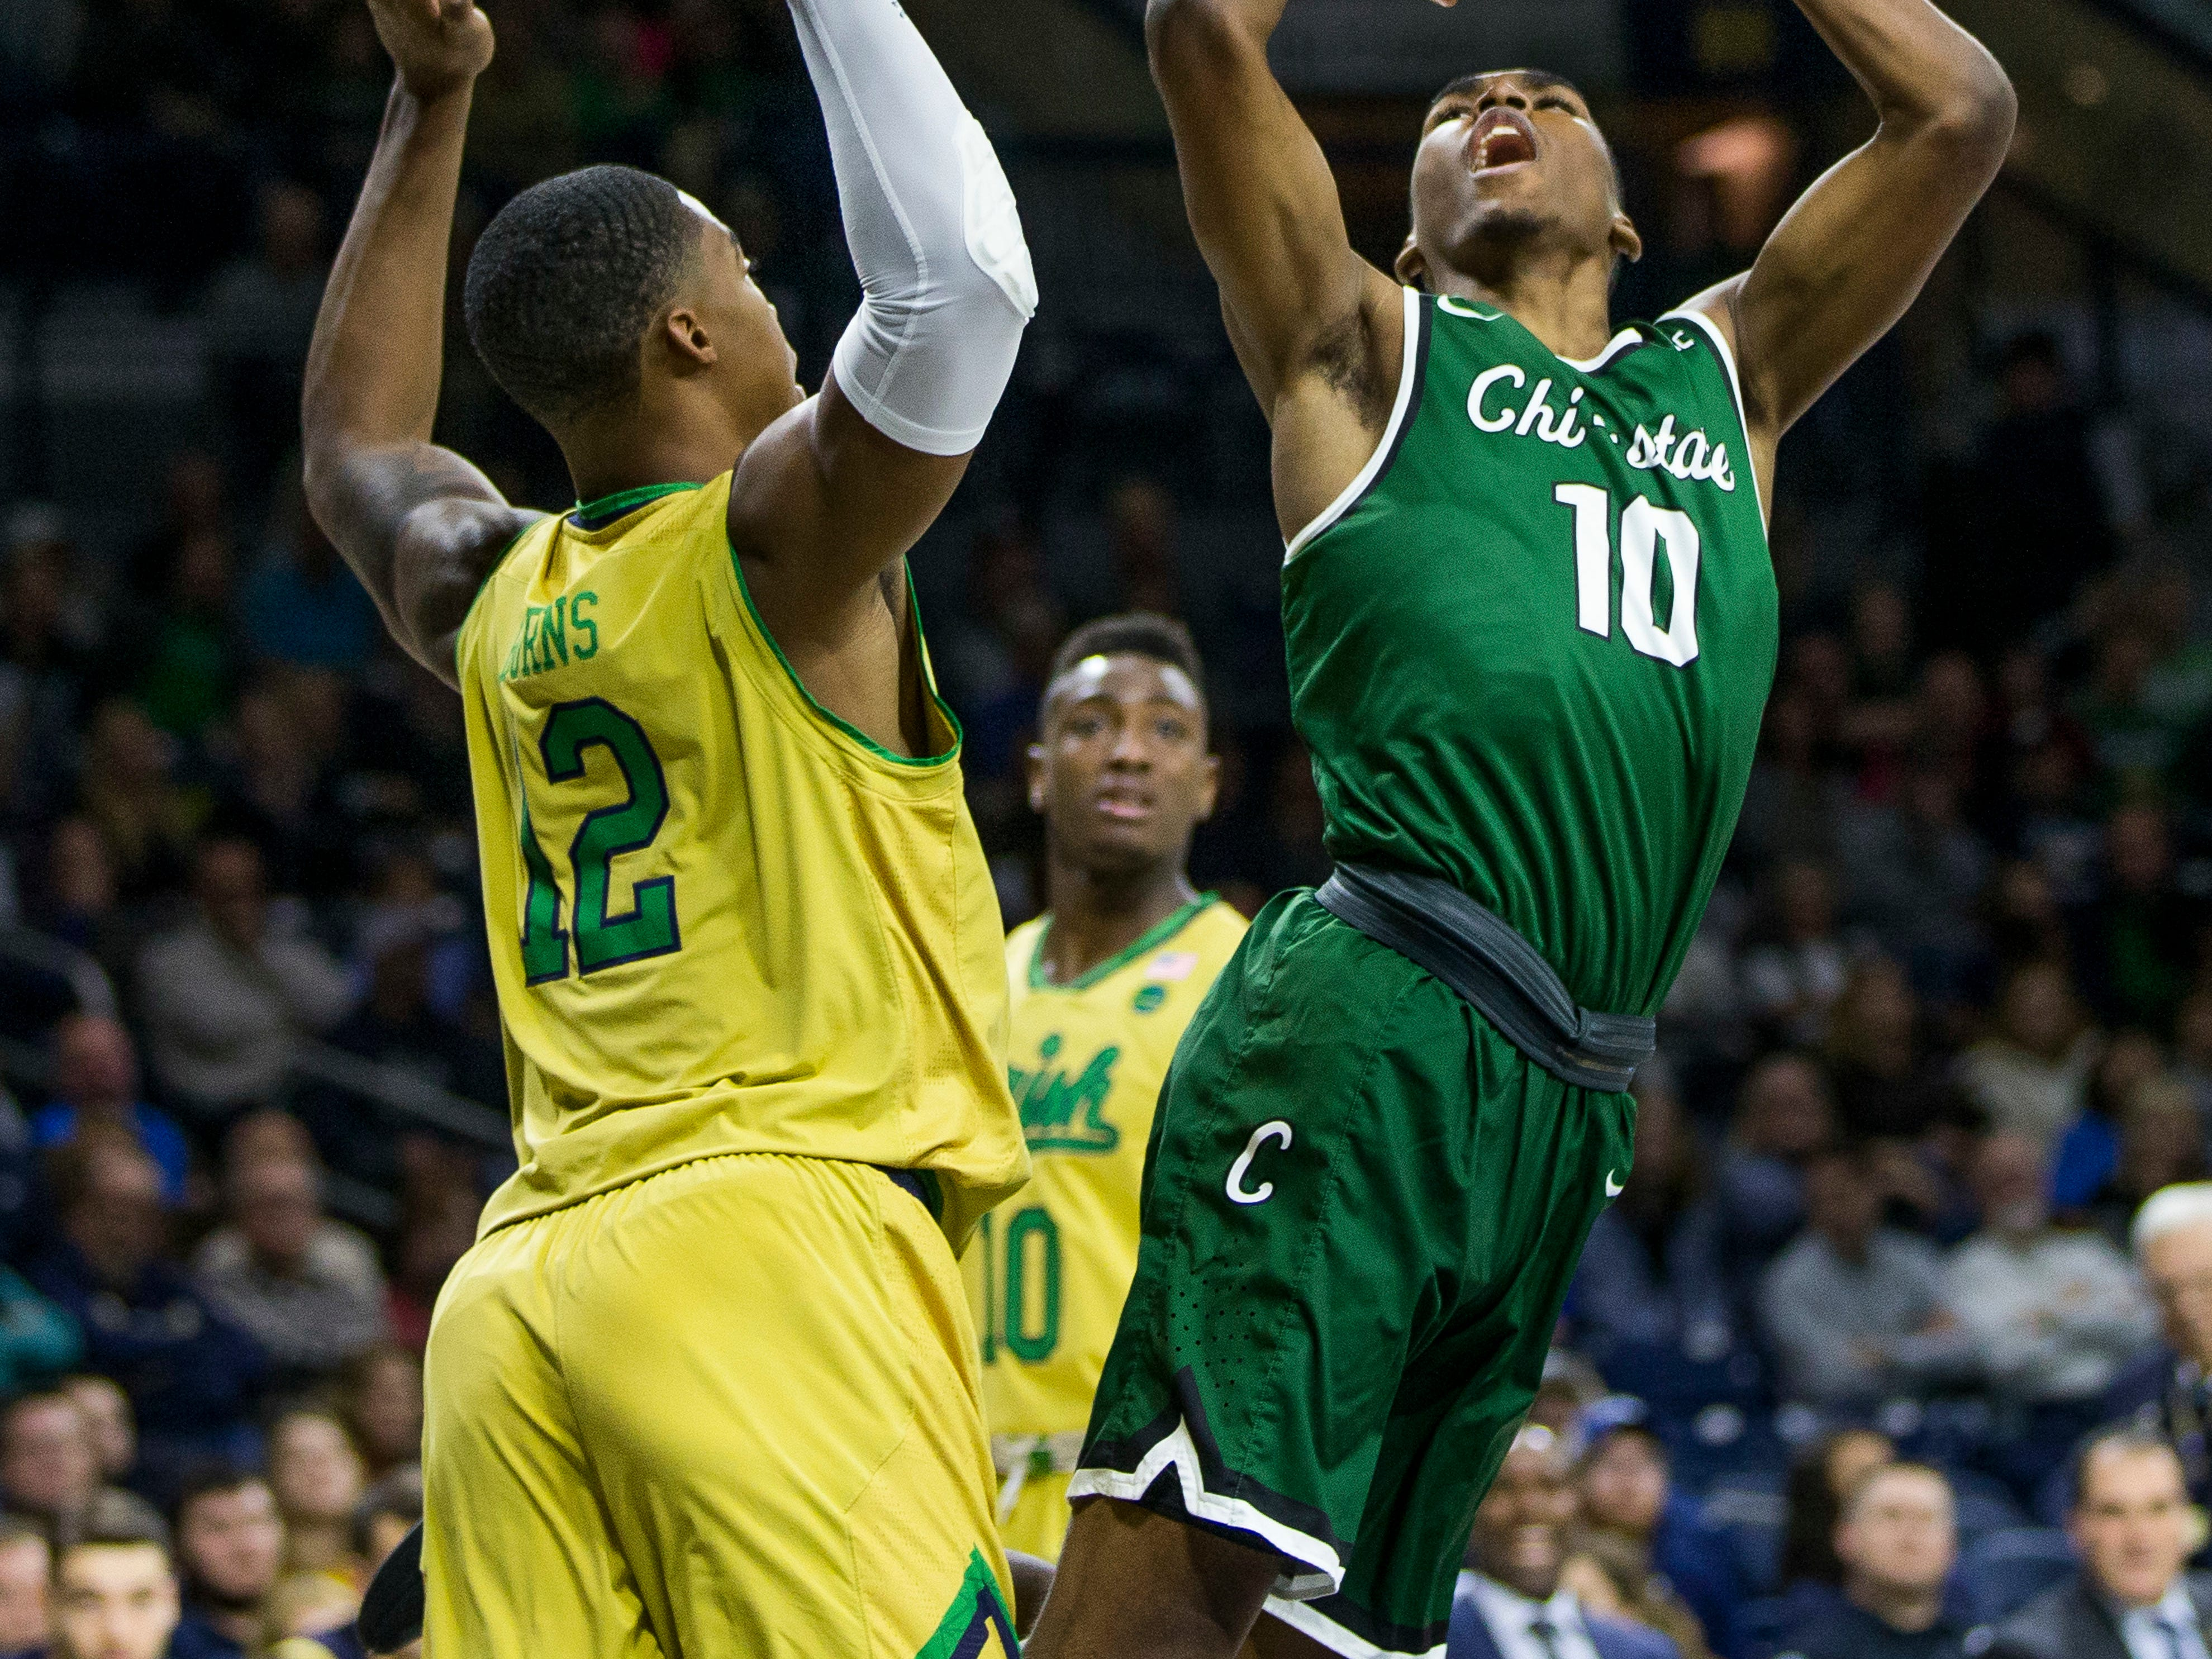 Chicago State's Anthony Harris (10) goes up to shoot in front of Notre Dame's Elijah Burns (12) during the first half of an NCAA college basketball game Thursday, Nov. 16, 2017, in South Bend, Ind. (AP Photo/Robert Franklin)